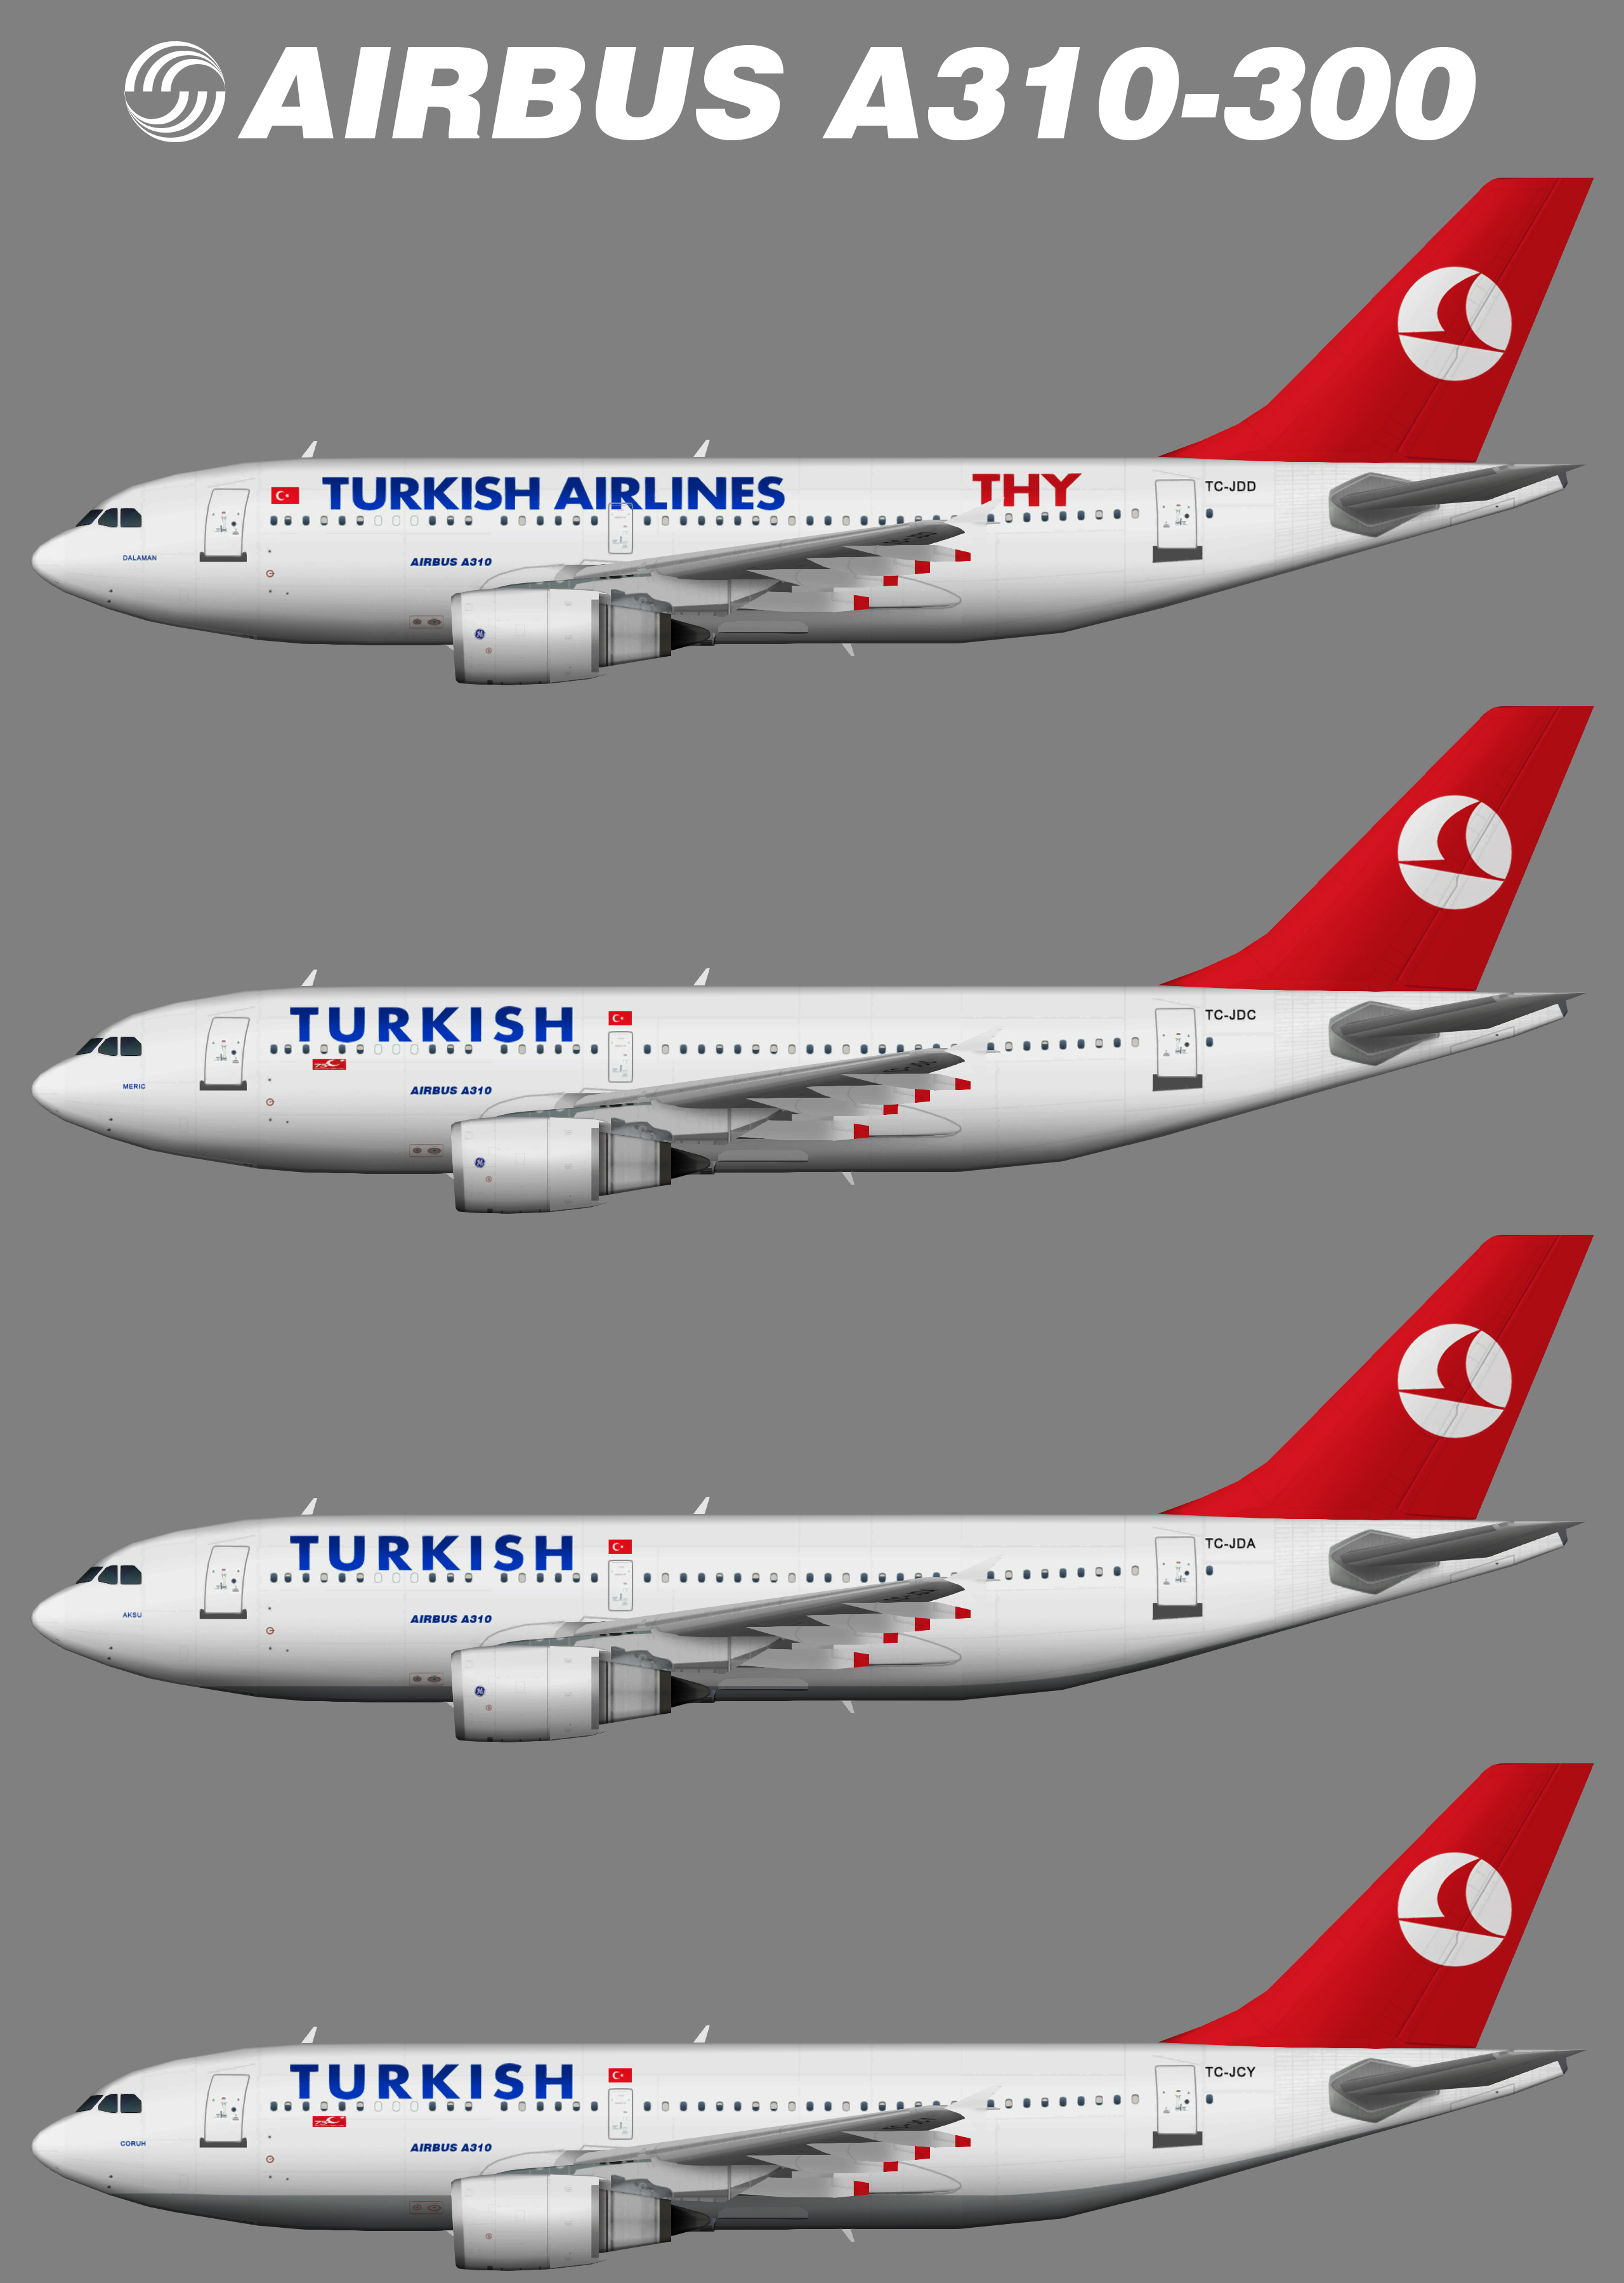 Turkish Airlines Airbus A310-300